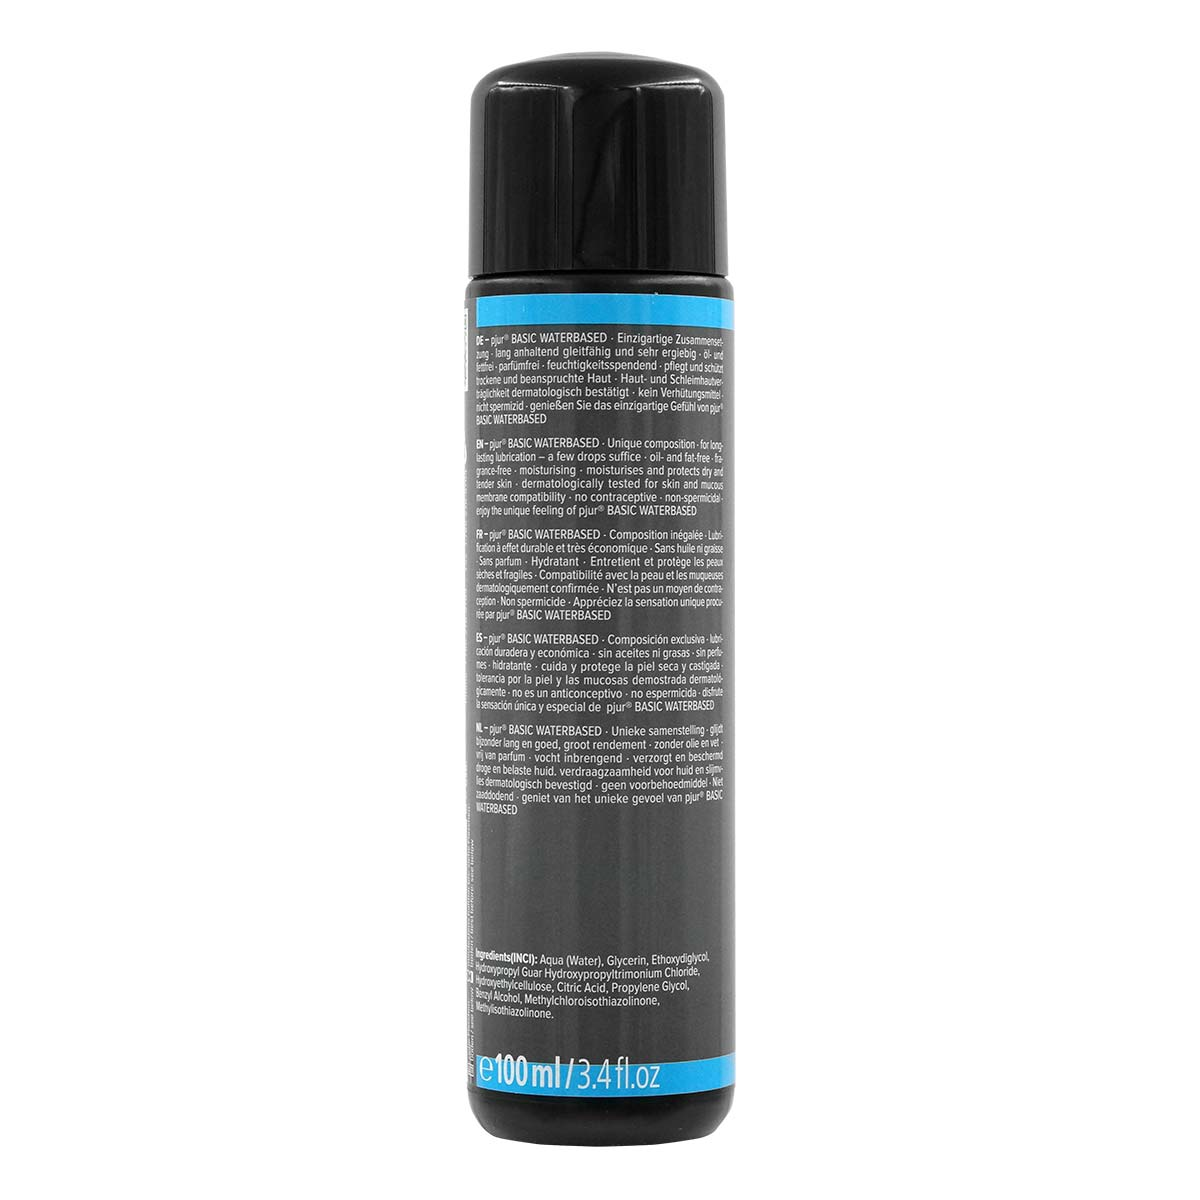 pjur BASIC WATERBASED 100ml Water-based Lubricant